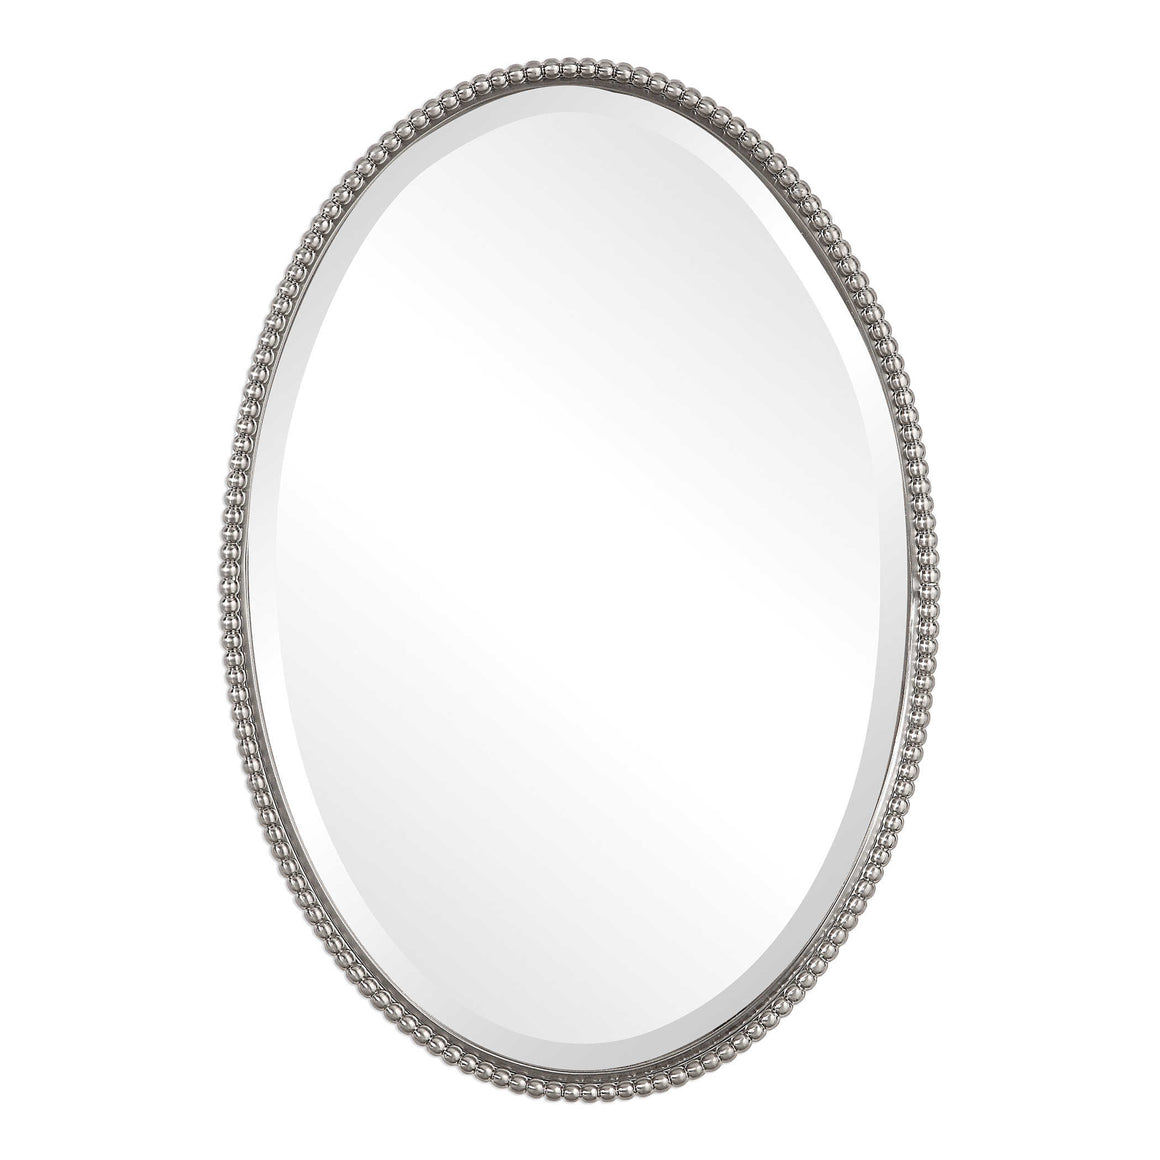 Sherise Brushed Nickel Oval Mirror - taylor ray decor